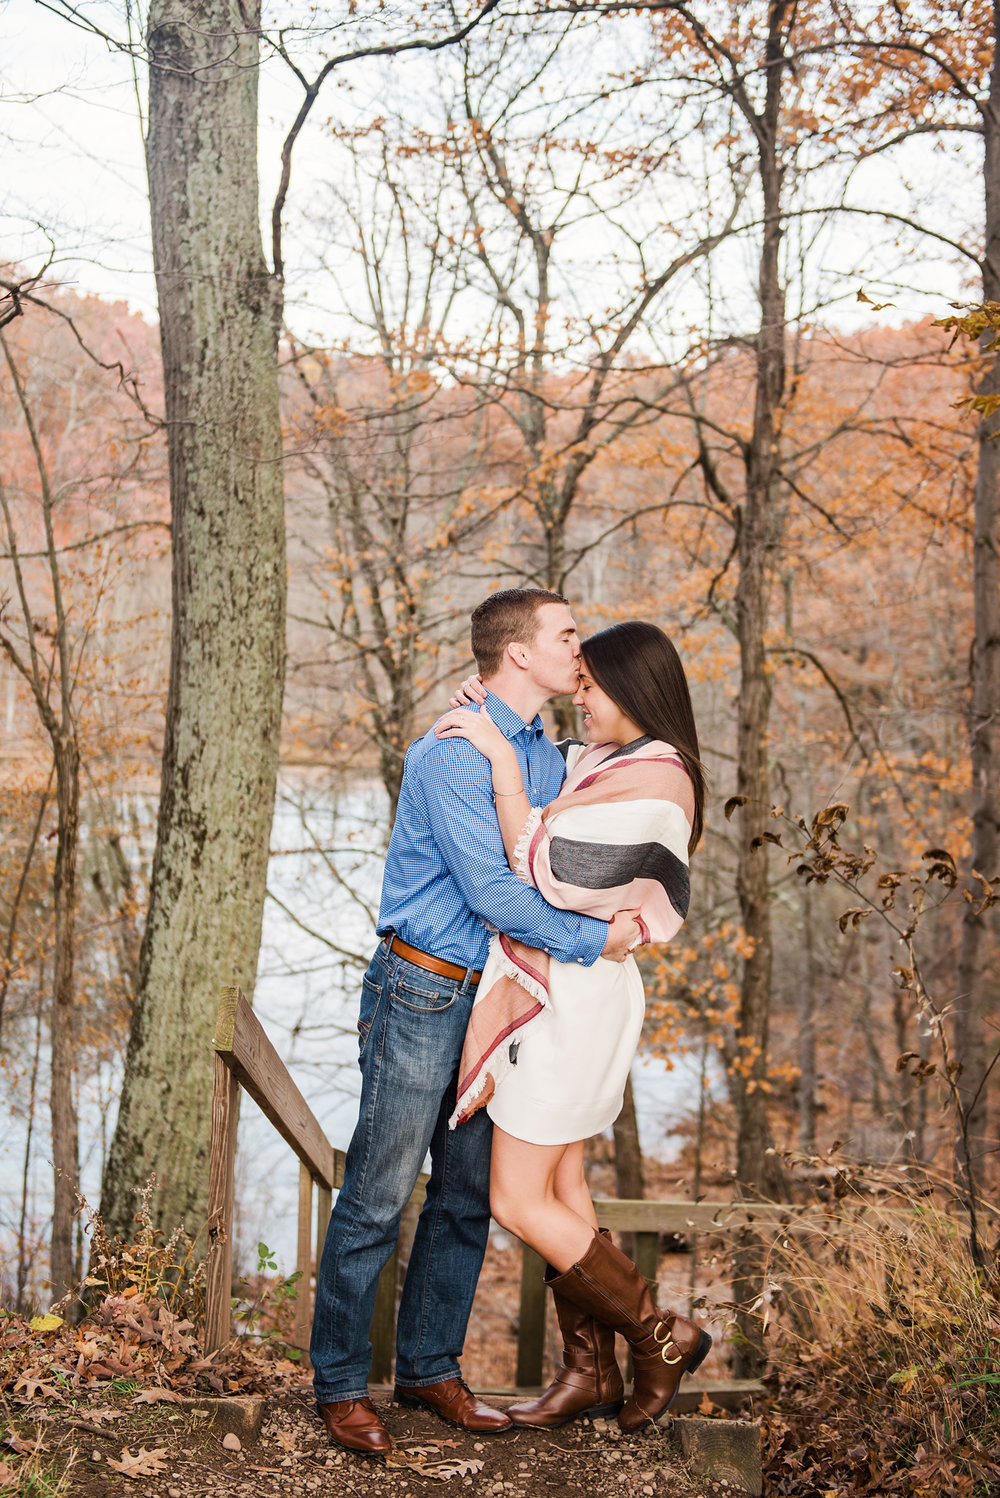 Mendon_Ponds_Park_Rochester_Engagement_Session_JILL_STUDIO_Rochester_NY_Photographer_DSC_0291.jpg